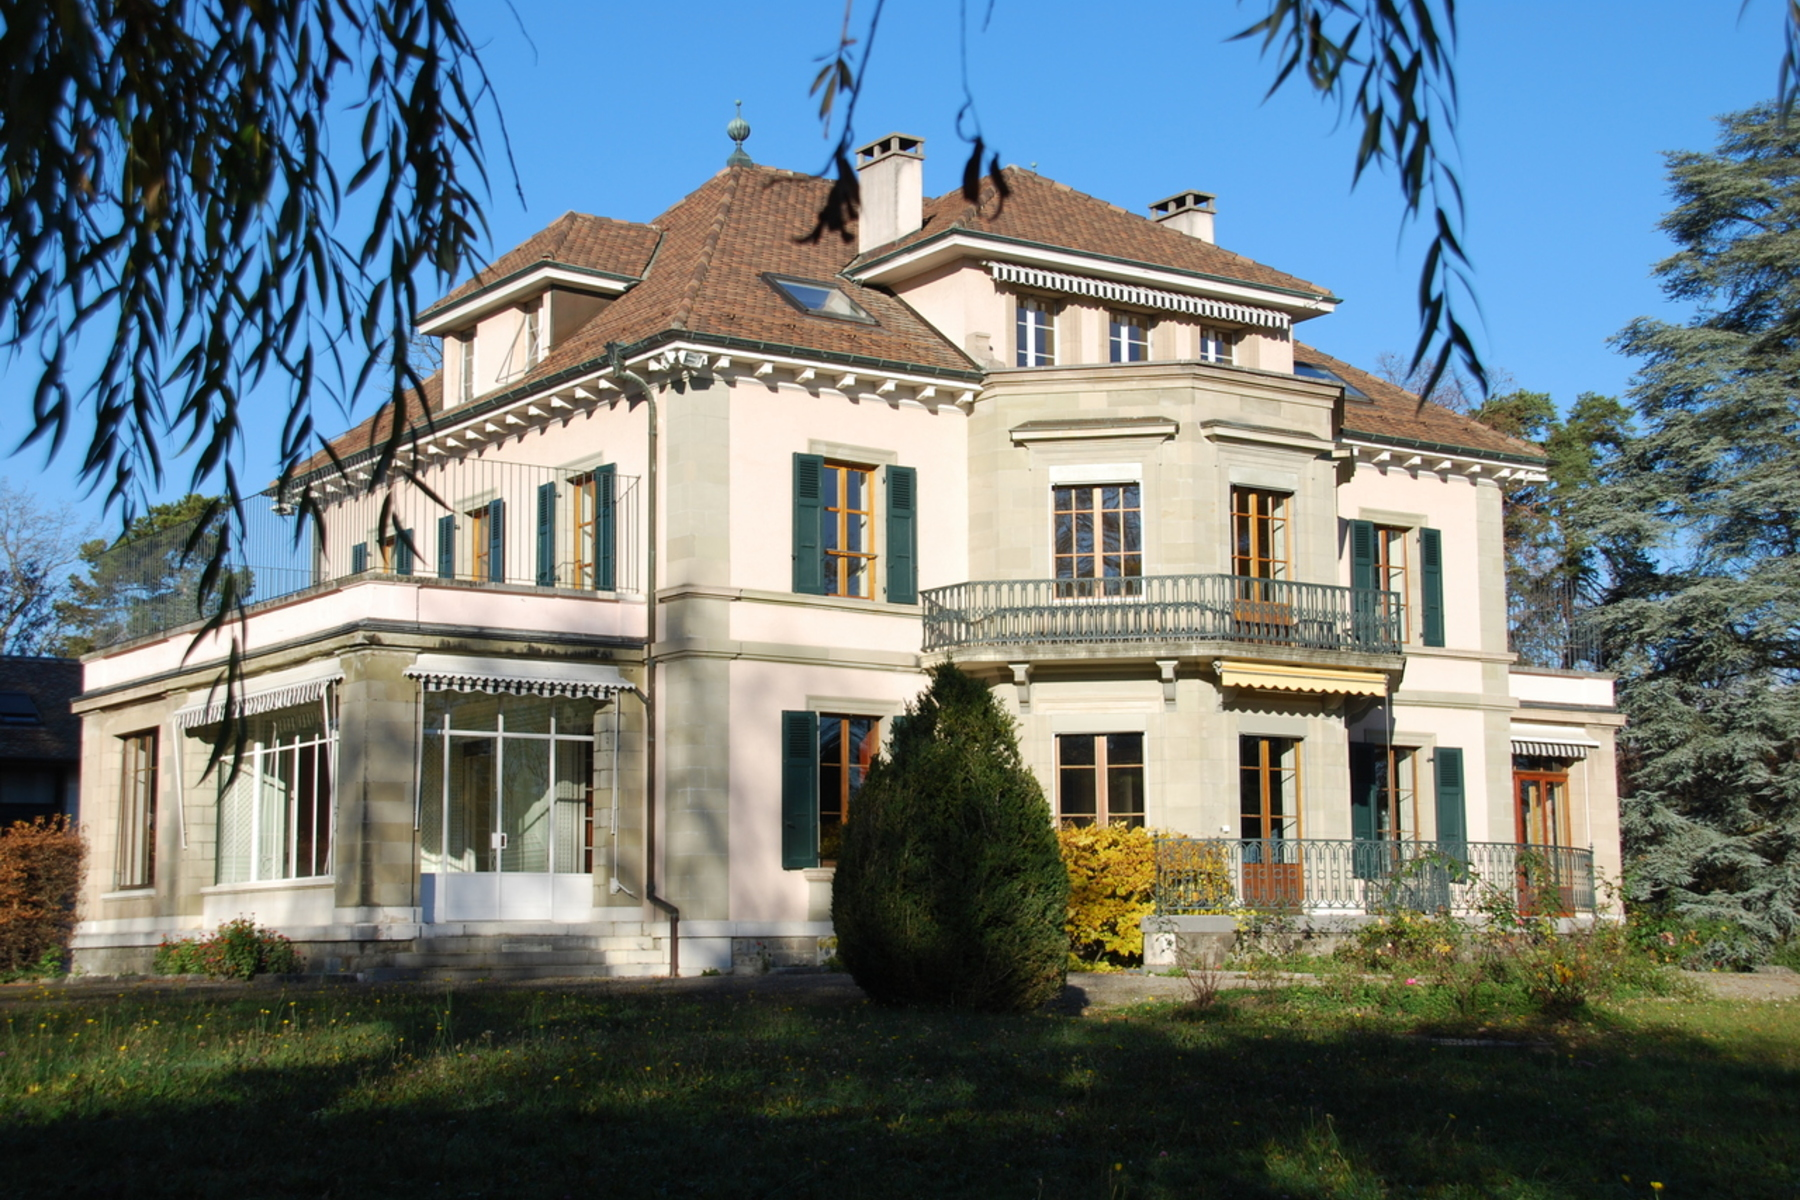 Single Family Home for Active at Stunning mansion Chambésy Chambesy, Geneva 1292 Switzerland